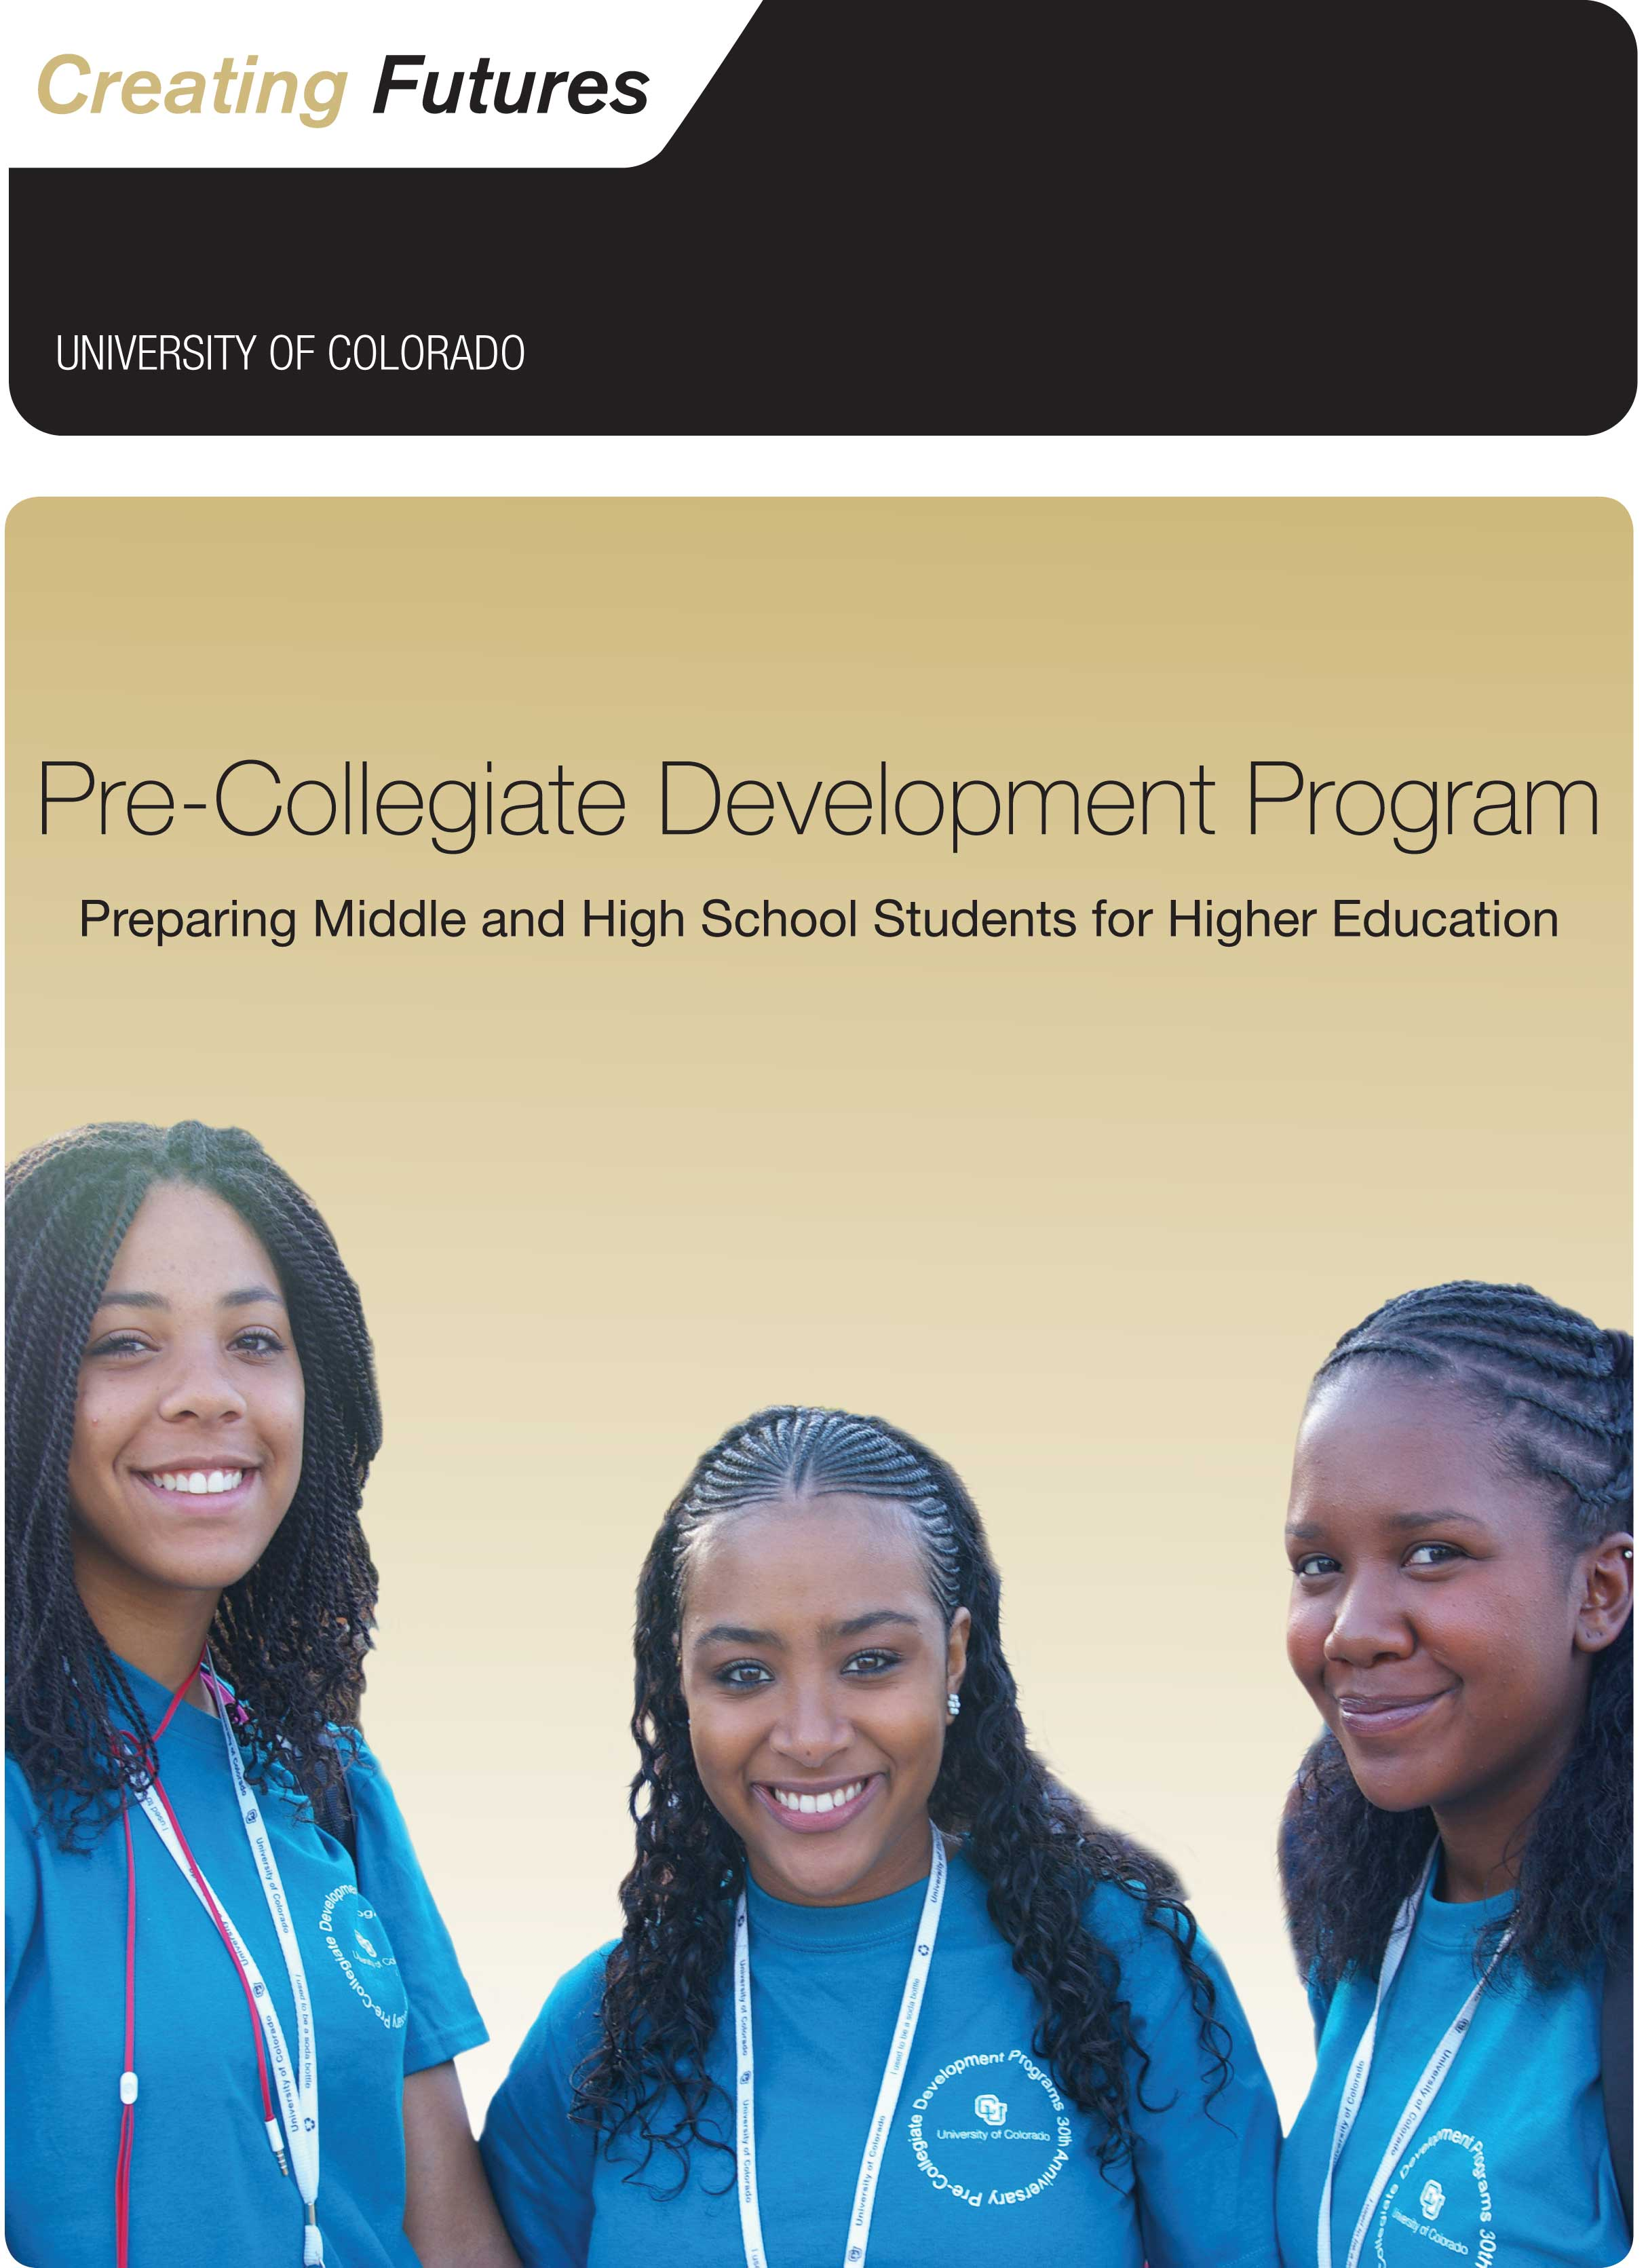 A brochure for the Pre-Collegiate Development Program at the University of Colorado.